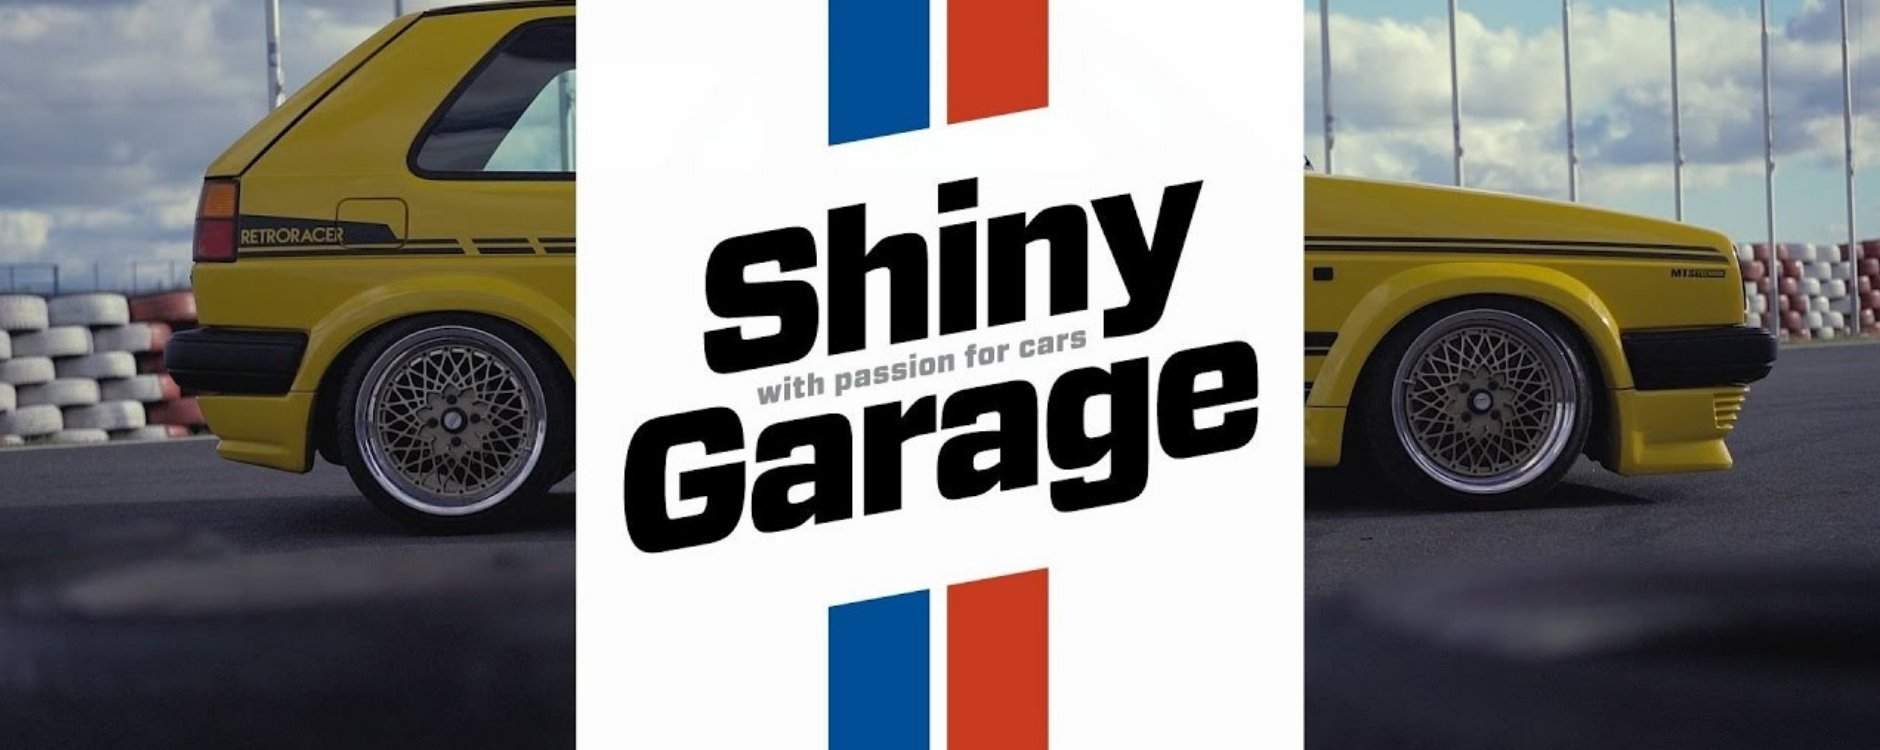 The Shiny Garage brand was created in 2012 by a group of enthusiasts thinking about enthusiasts. Our products combine the two most-desired features among auto detailing enthusiasts - high quality and good price. Shiny Garage preparations are not only high efficiency and effectiveness, but also a pleasant sensory experience thanks to the surprising combinations of fragrances. The enthusiasts of auto-detailing are estets, so our products, thanks to saturated and surprising colors, and refined labels, are also fun for the eye.  The auto-detailing market is very dynamic; We are constantly working on improving our products so that they meet the requirements of the growing number of increasingly demanding customers. Before the product goes into the hands of the customer, it is tested in detail both by us and by experienced auto-detailers. This process allows us to eliminate possible imperfections, and accurately respond to the expectations of our customers. We encourage you to contact us not only to purchase our products; We are always ready to answer any questions and advise you when choosing the right products.